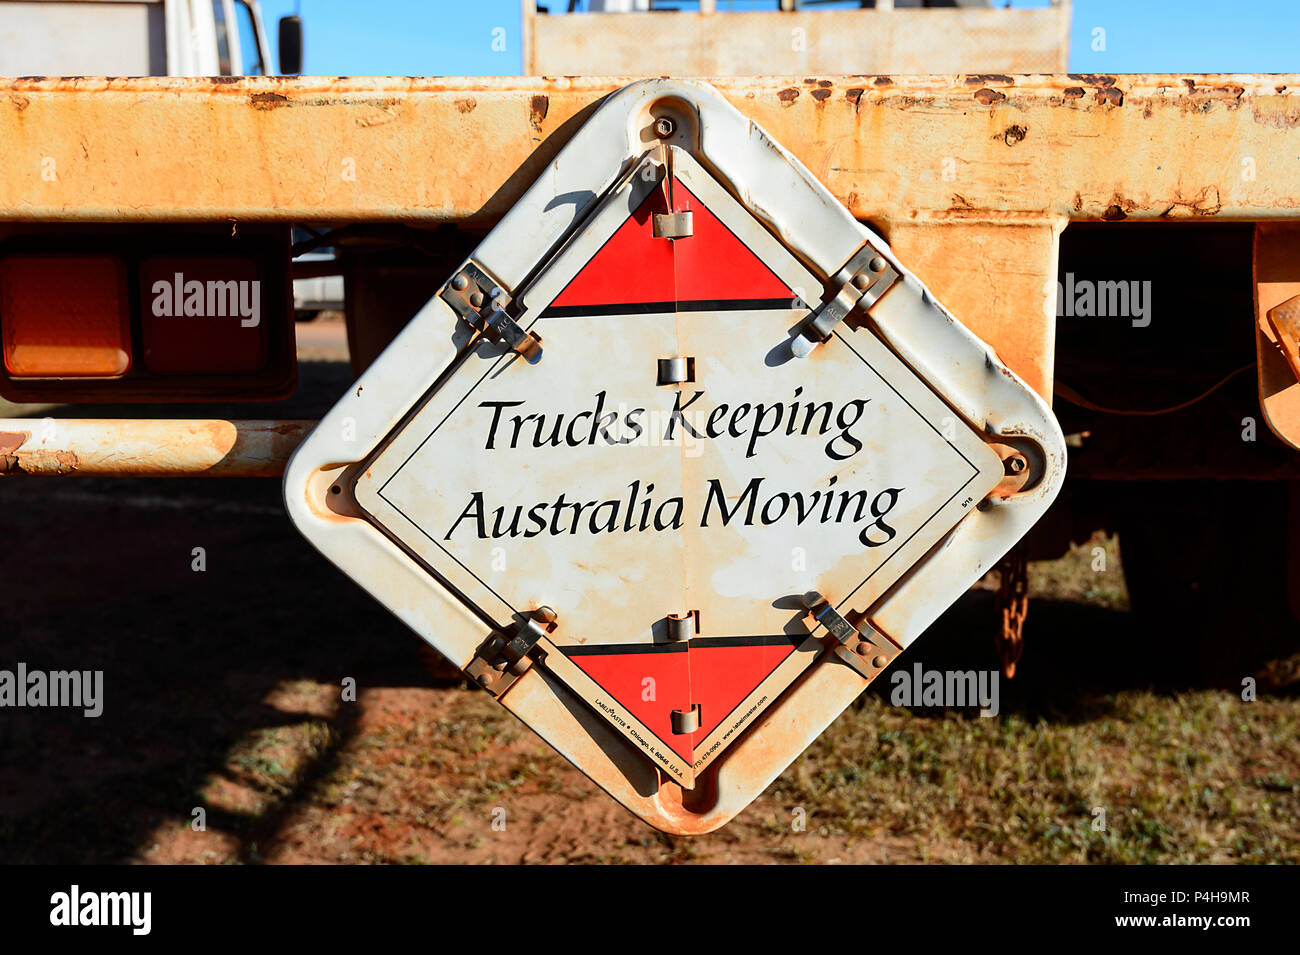 'Trucks keeping Australia moving' sign attached to the back of a truck, Australia - Stock Image